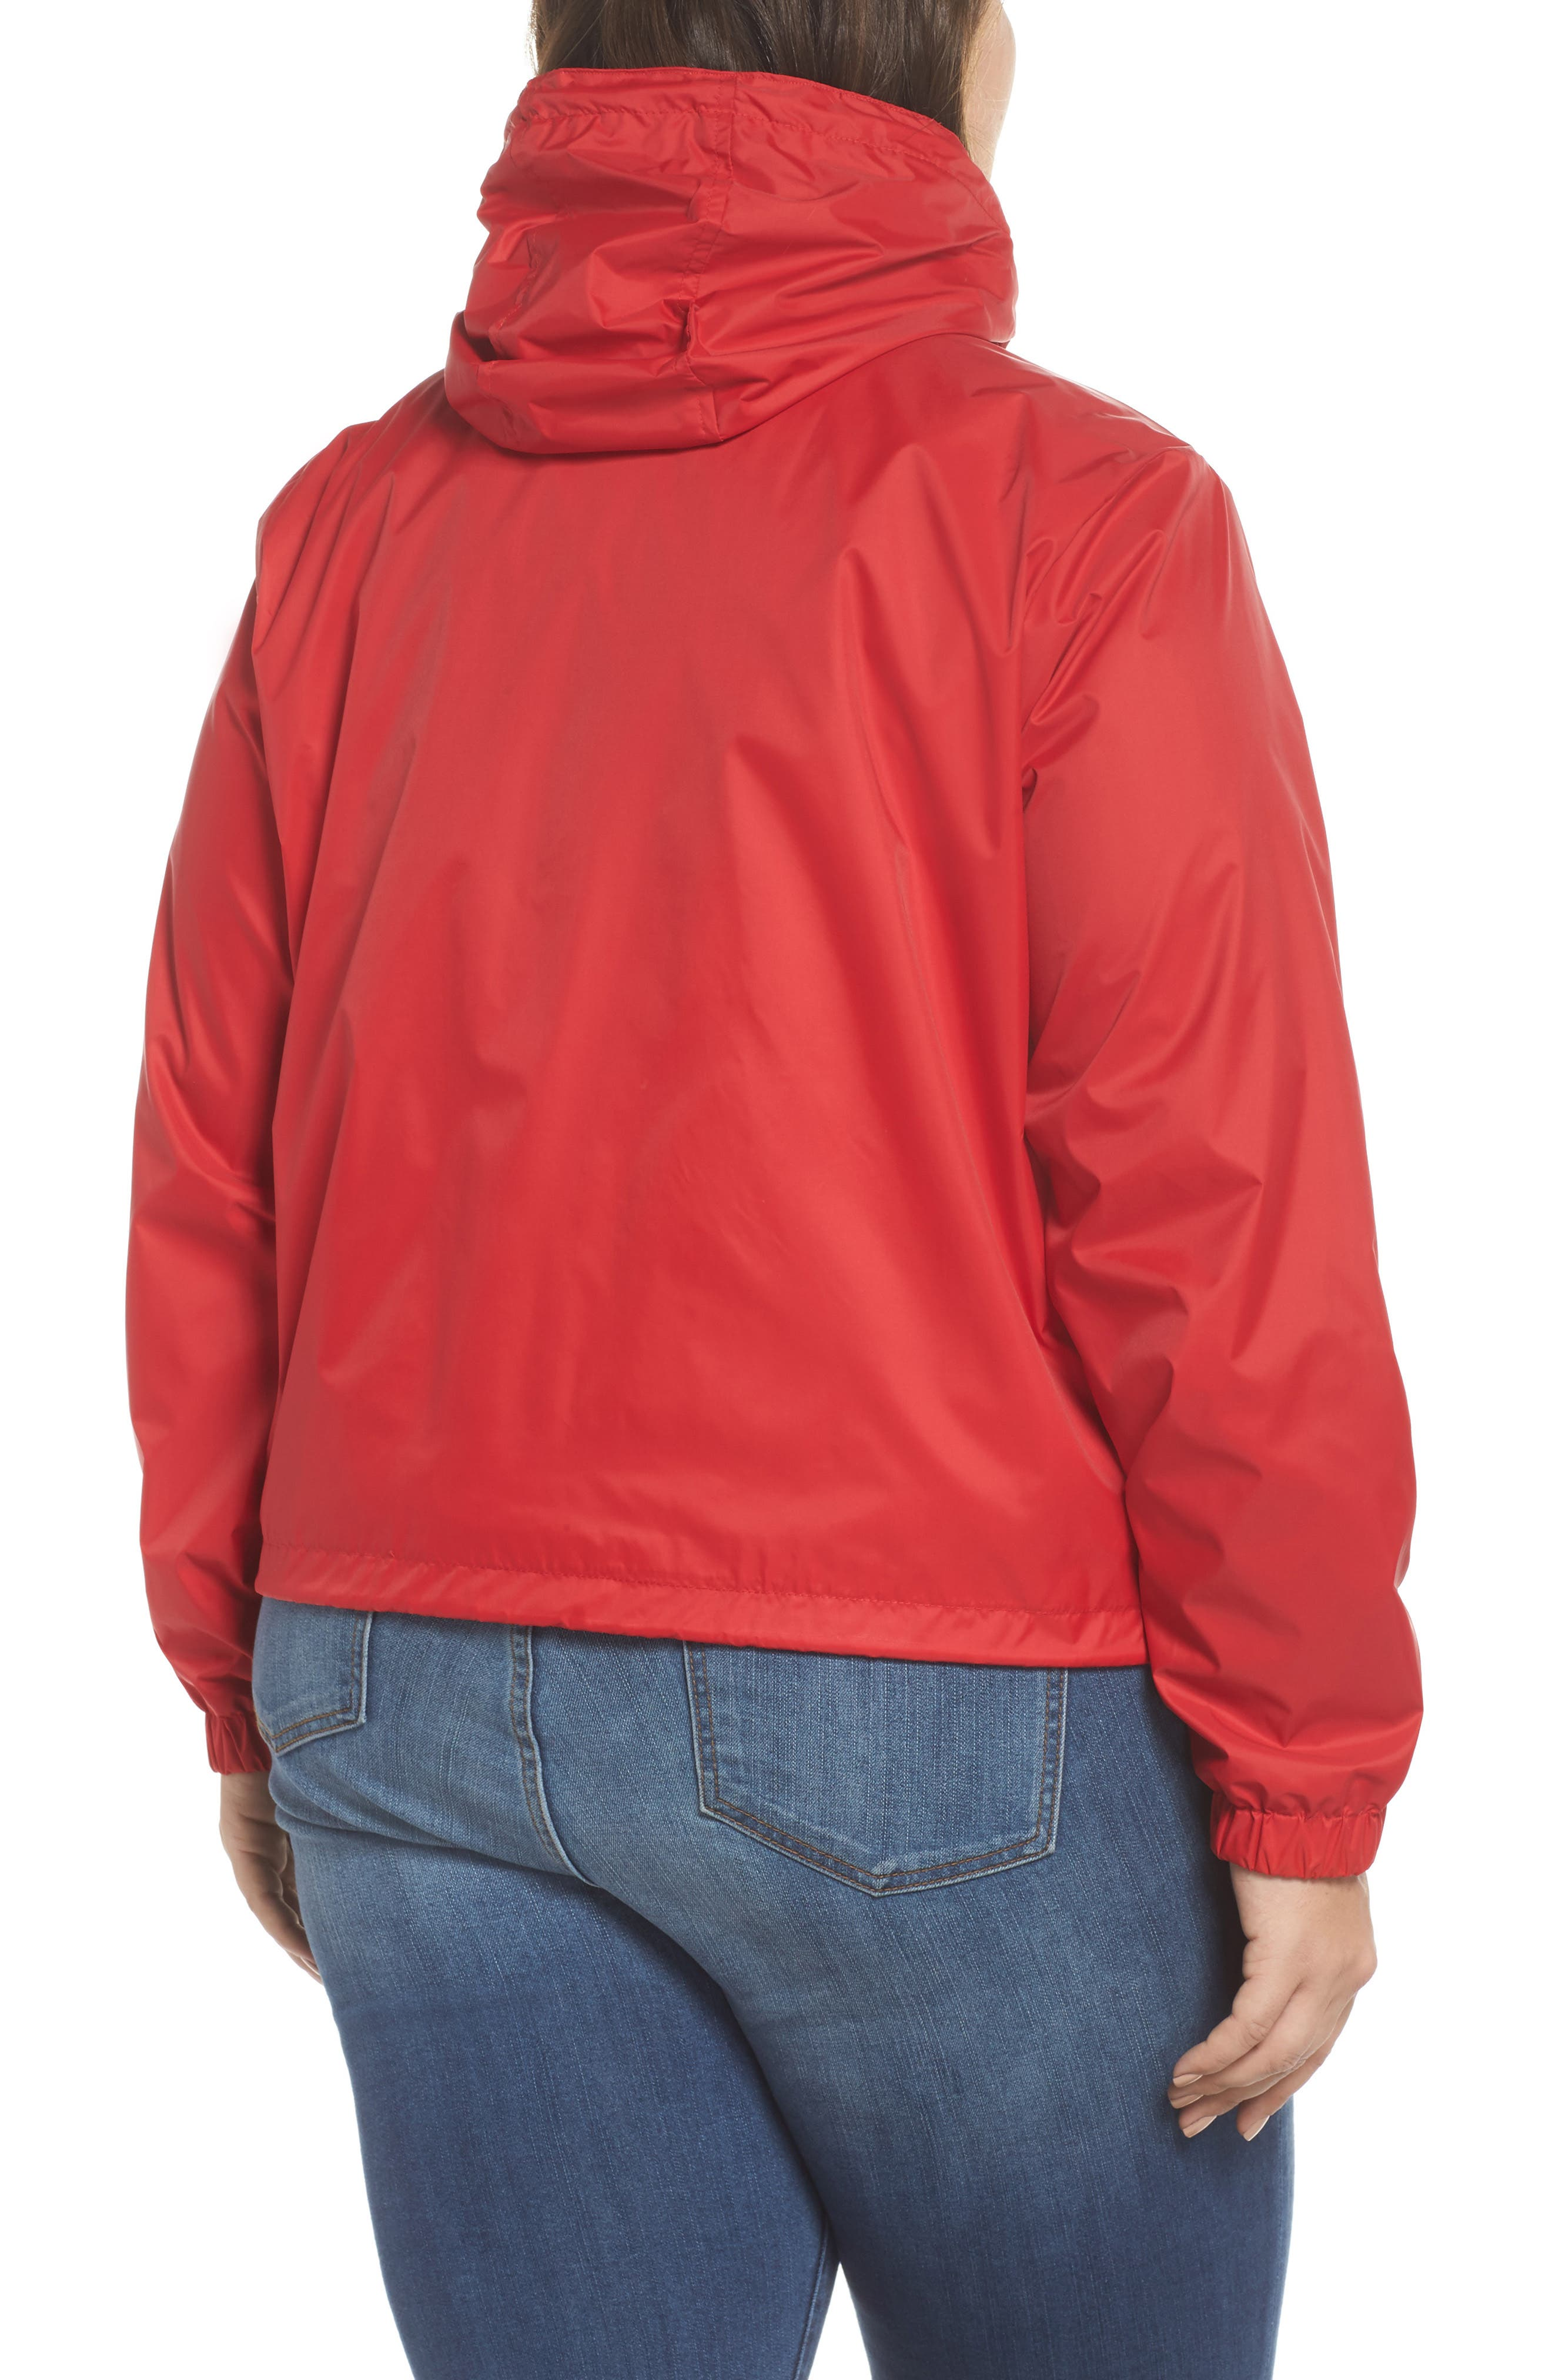 Retro Hooded Coach's Jacket,                             Alternate thumbnail 7, color,